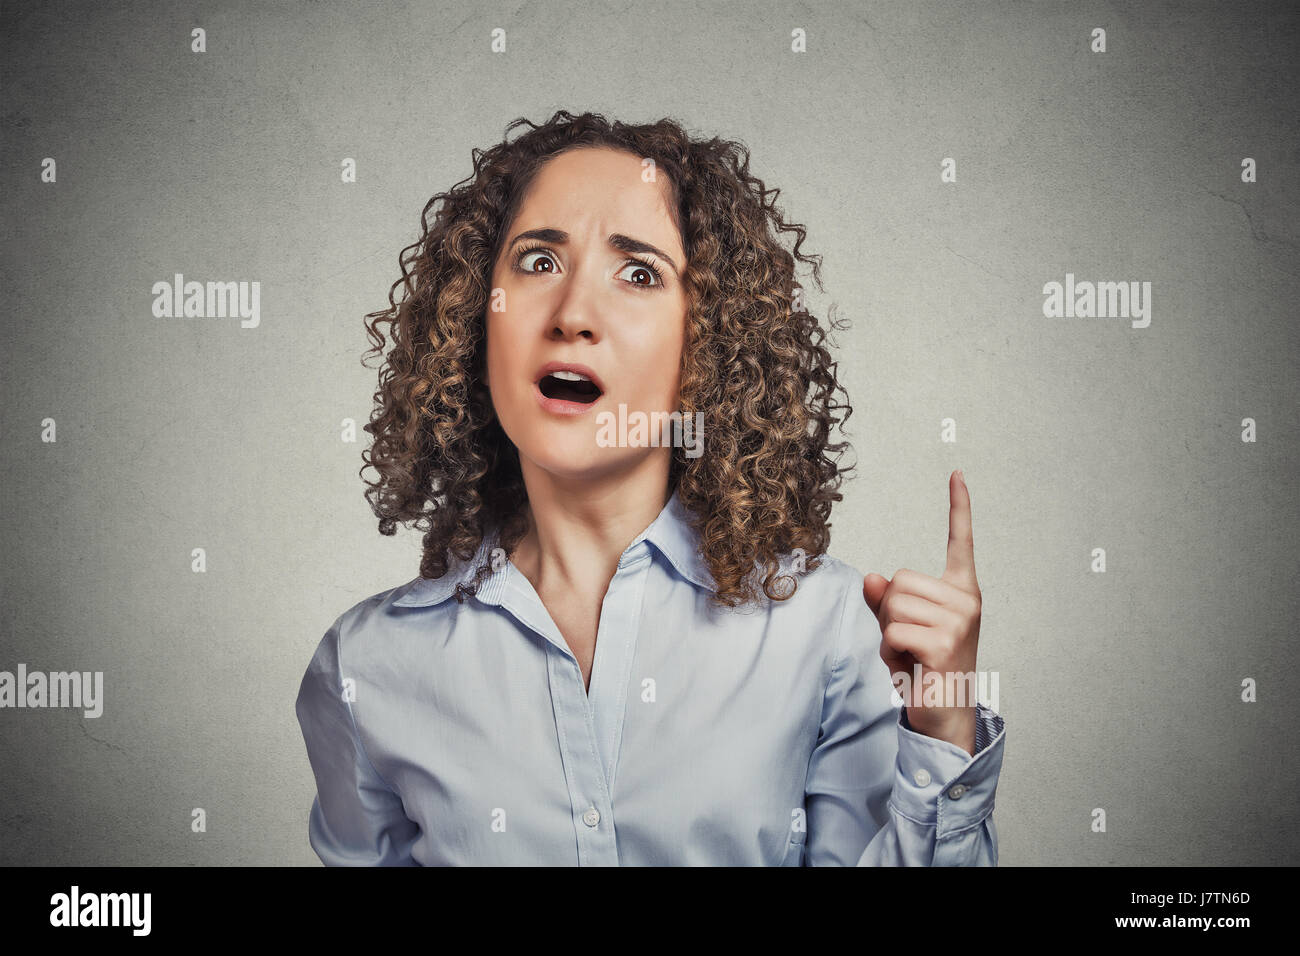 Headshot attractive business woman having good idea aha thought pointing index finger up solution found isolated - Stock Image